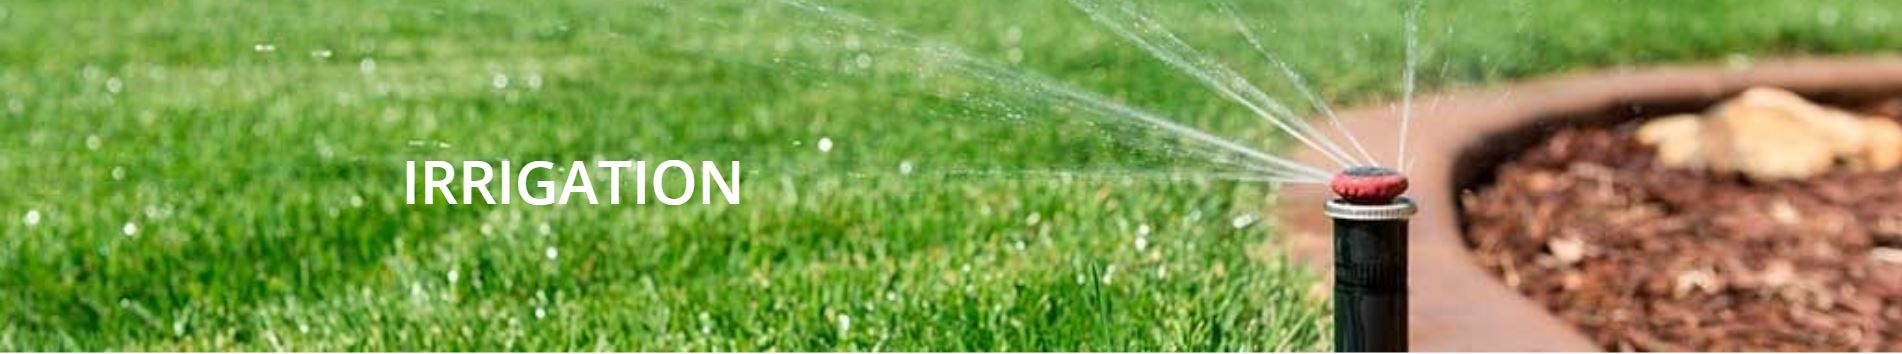 Lawn Irrigation Installers